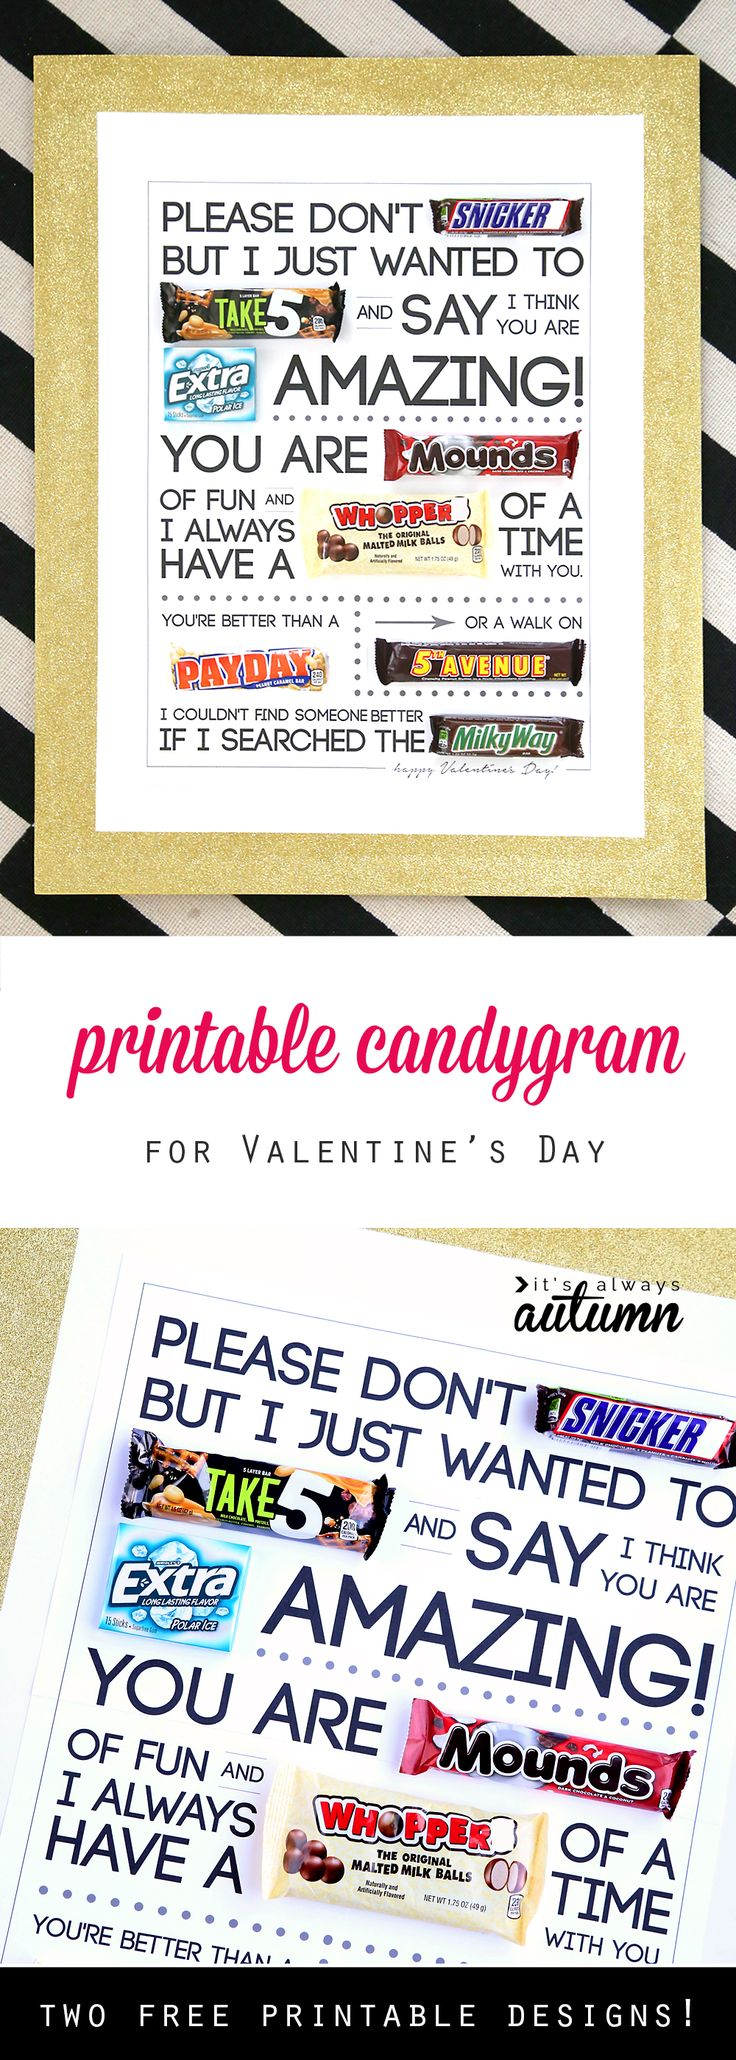 Best 25+ Cheap valentines day ideas ideas on Pinterest | Cheap ...